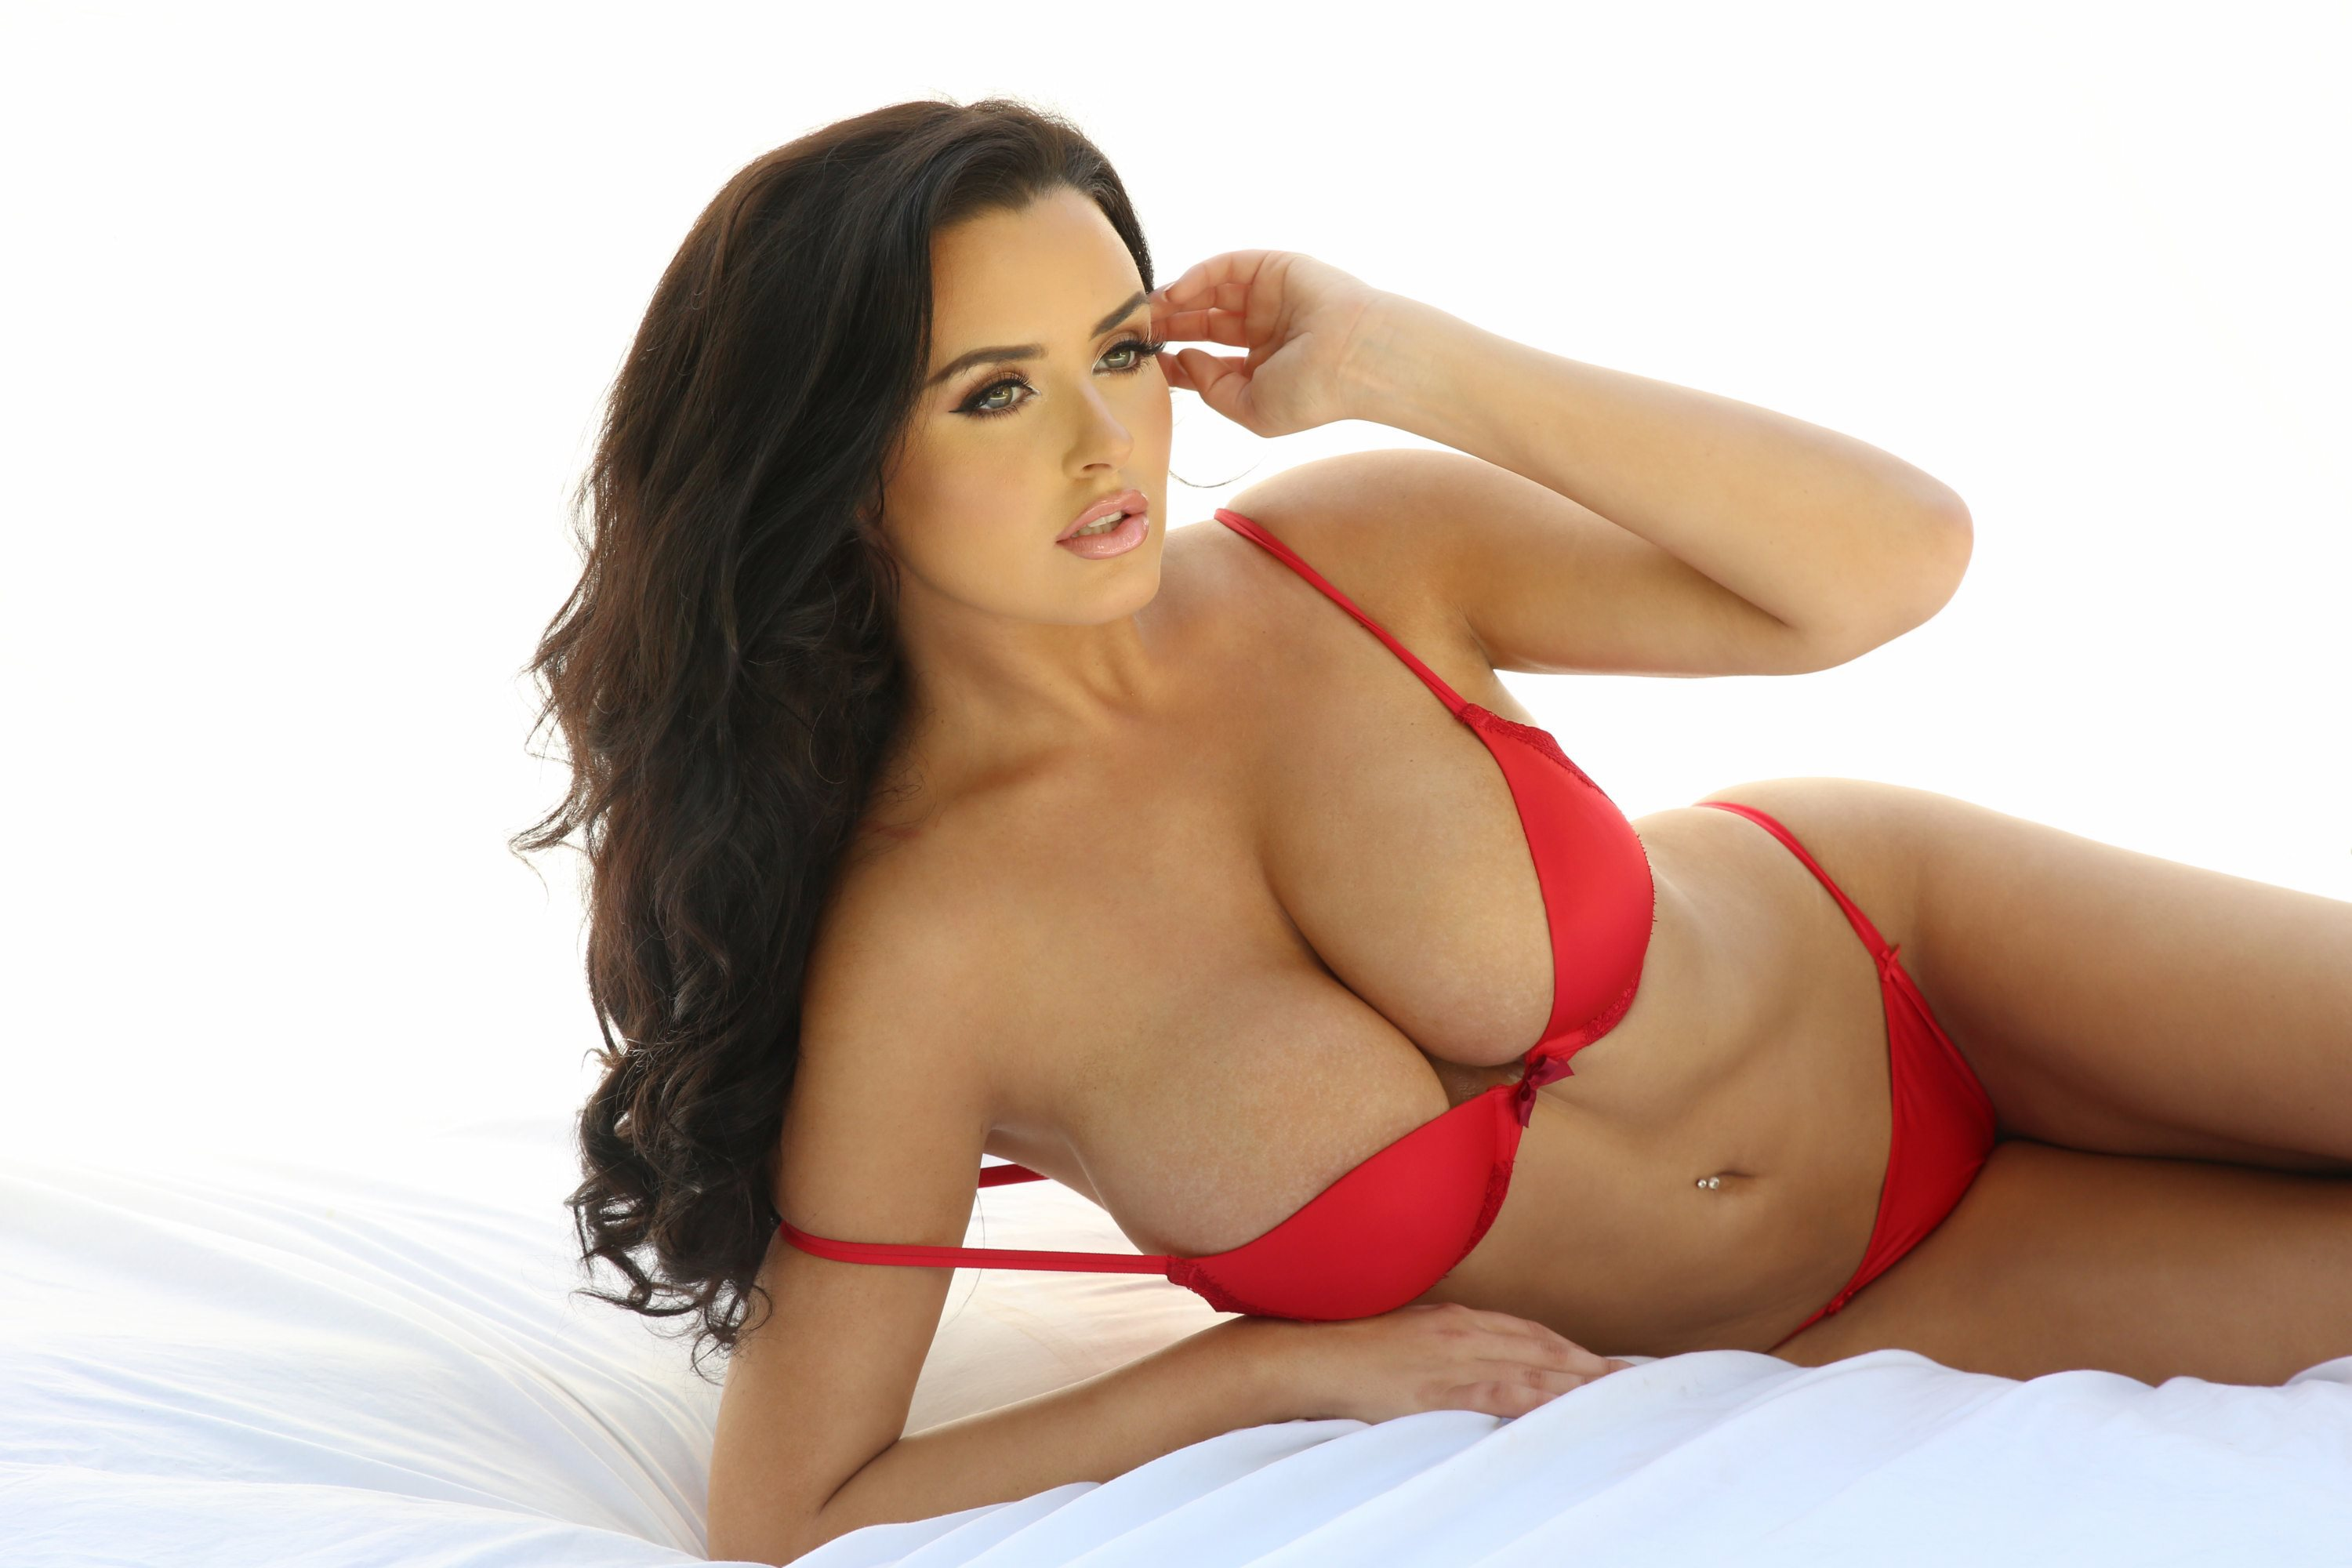 Abigail Ratchford For Desktop